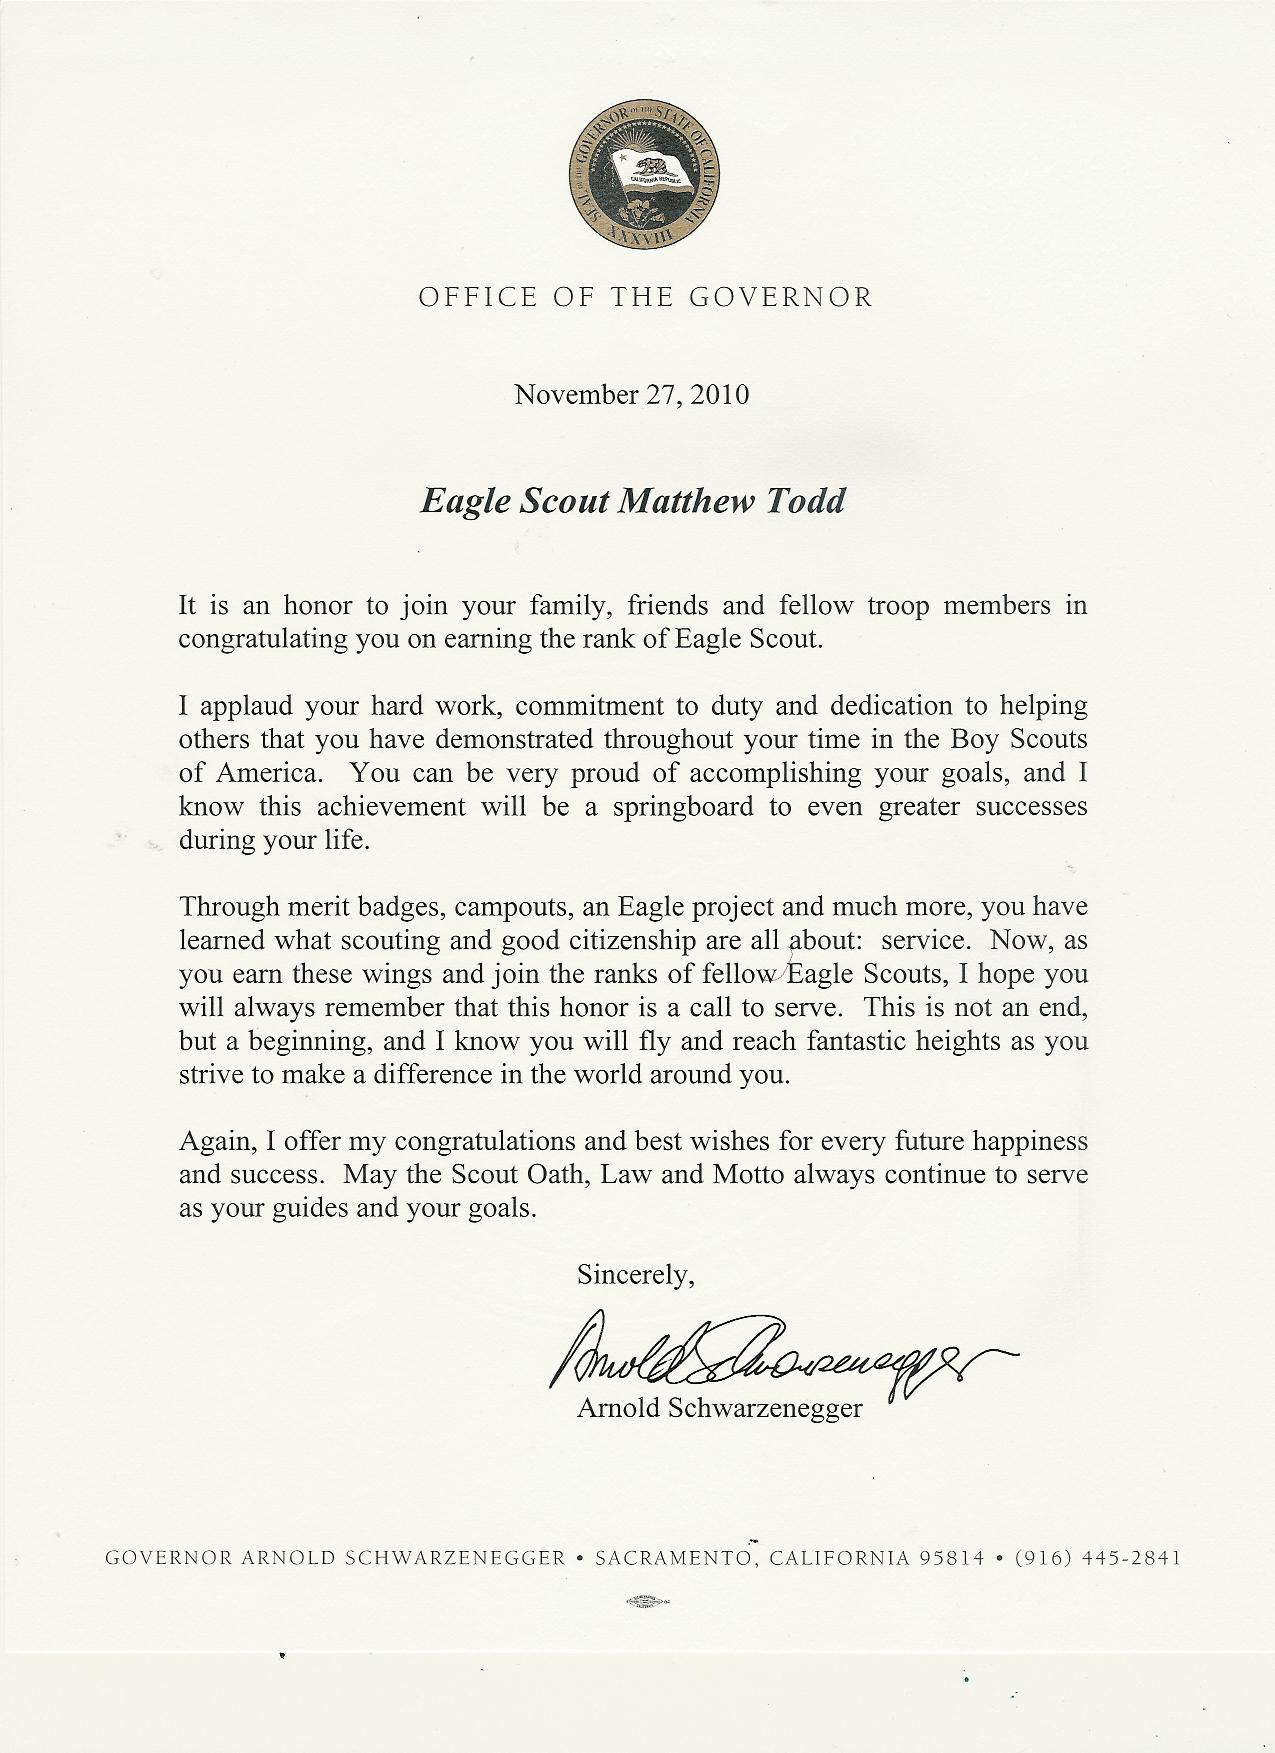 Information playground matthews eagle application and commendations a letter from arnold schwarzenegger altavistaventures Images